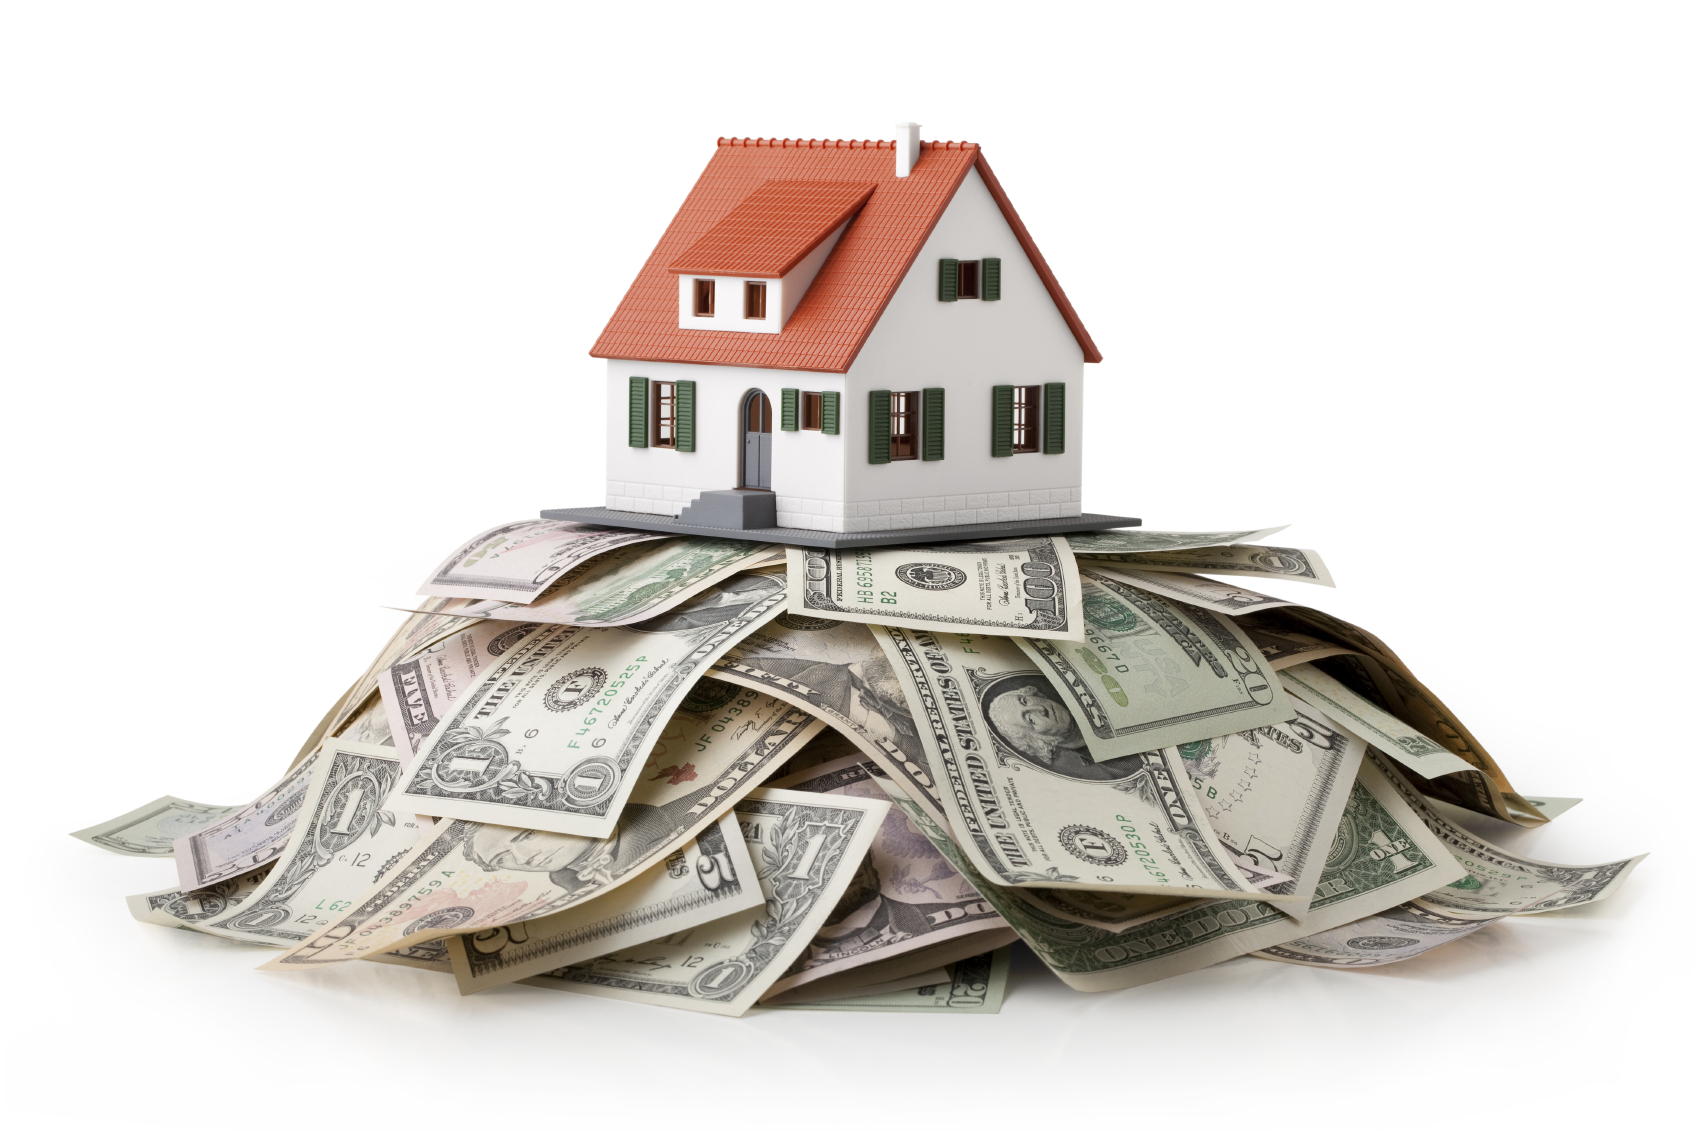 How Much Money Do I Need To Start and Assisted Living Facility?